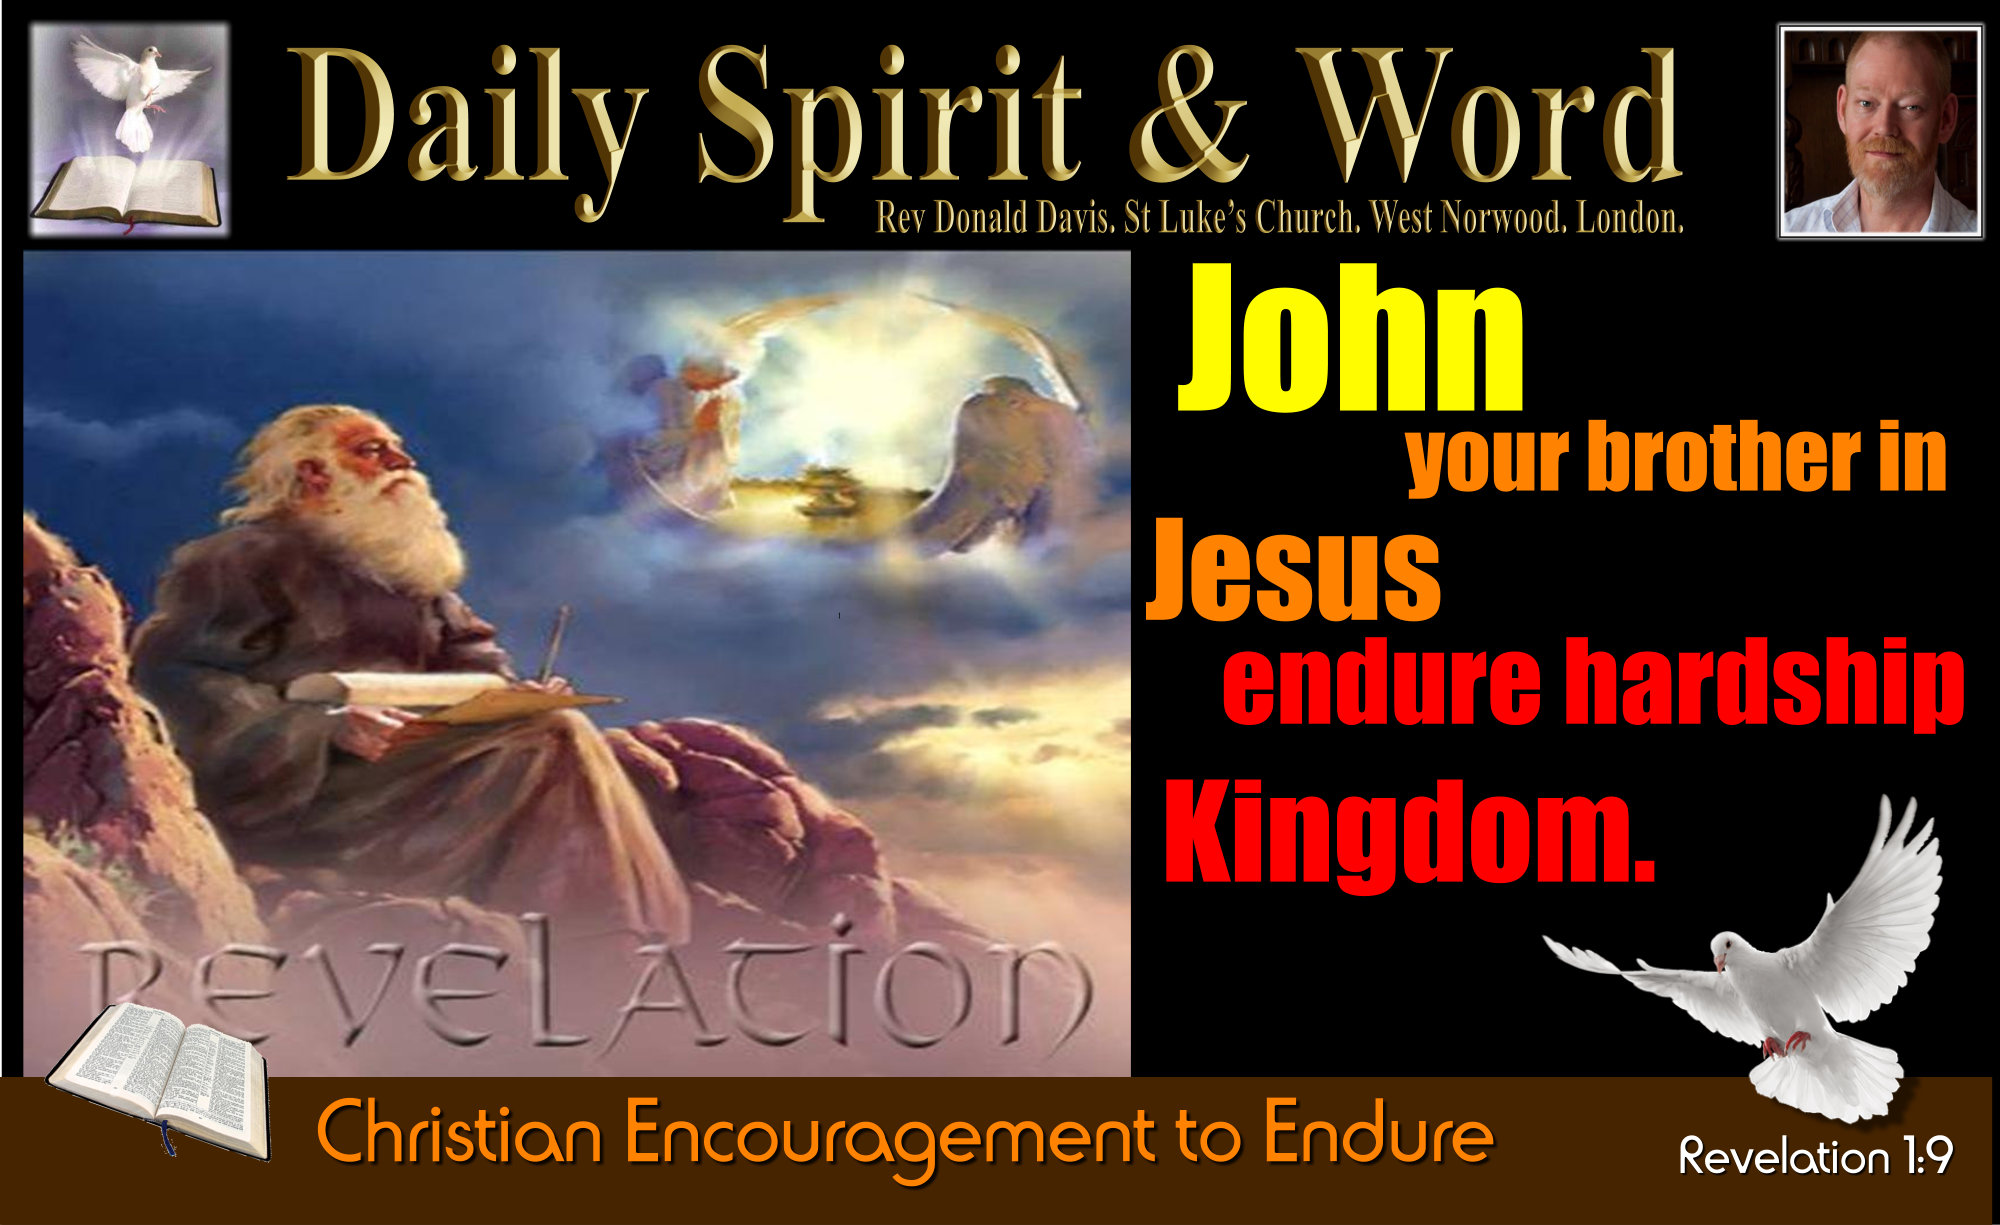 Revelation 1:9 John, your brother